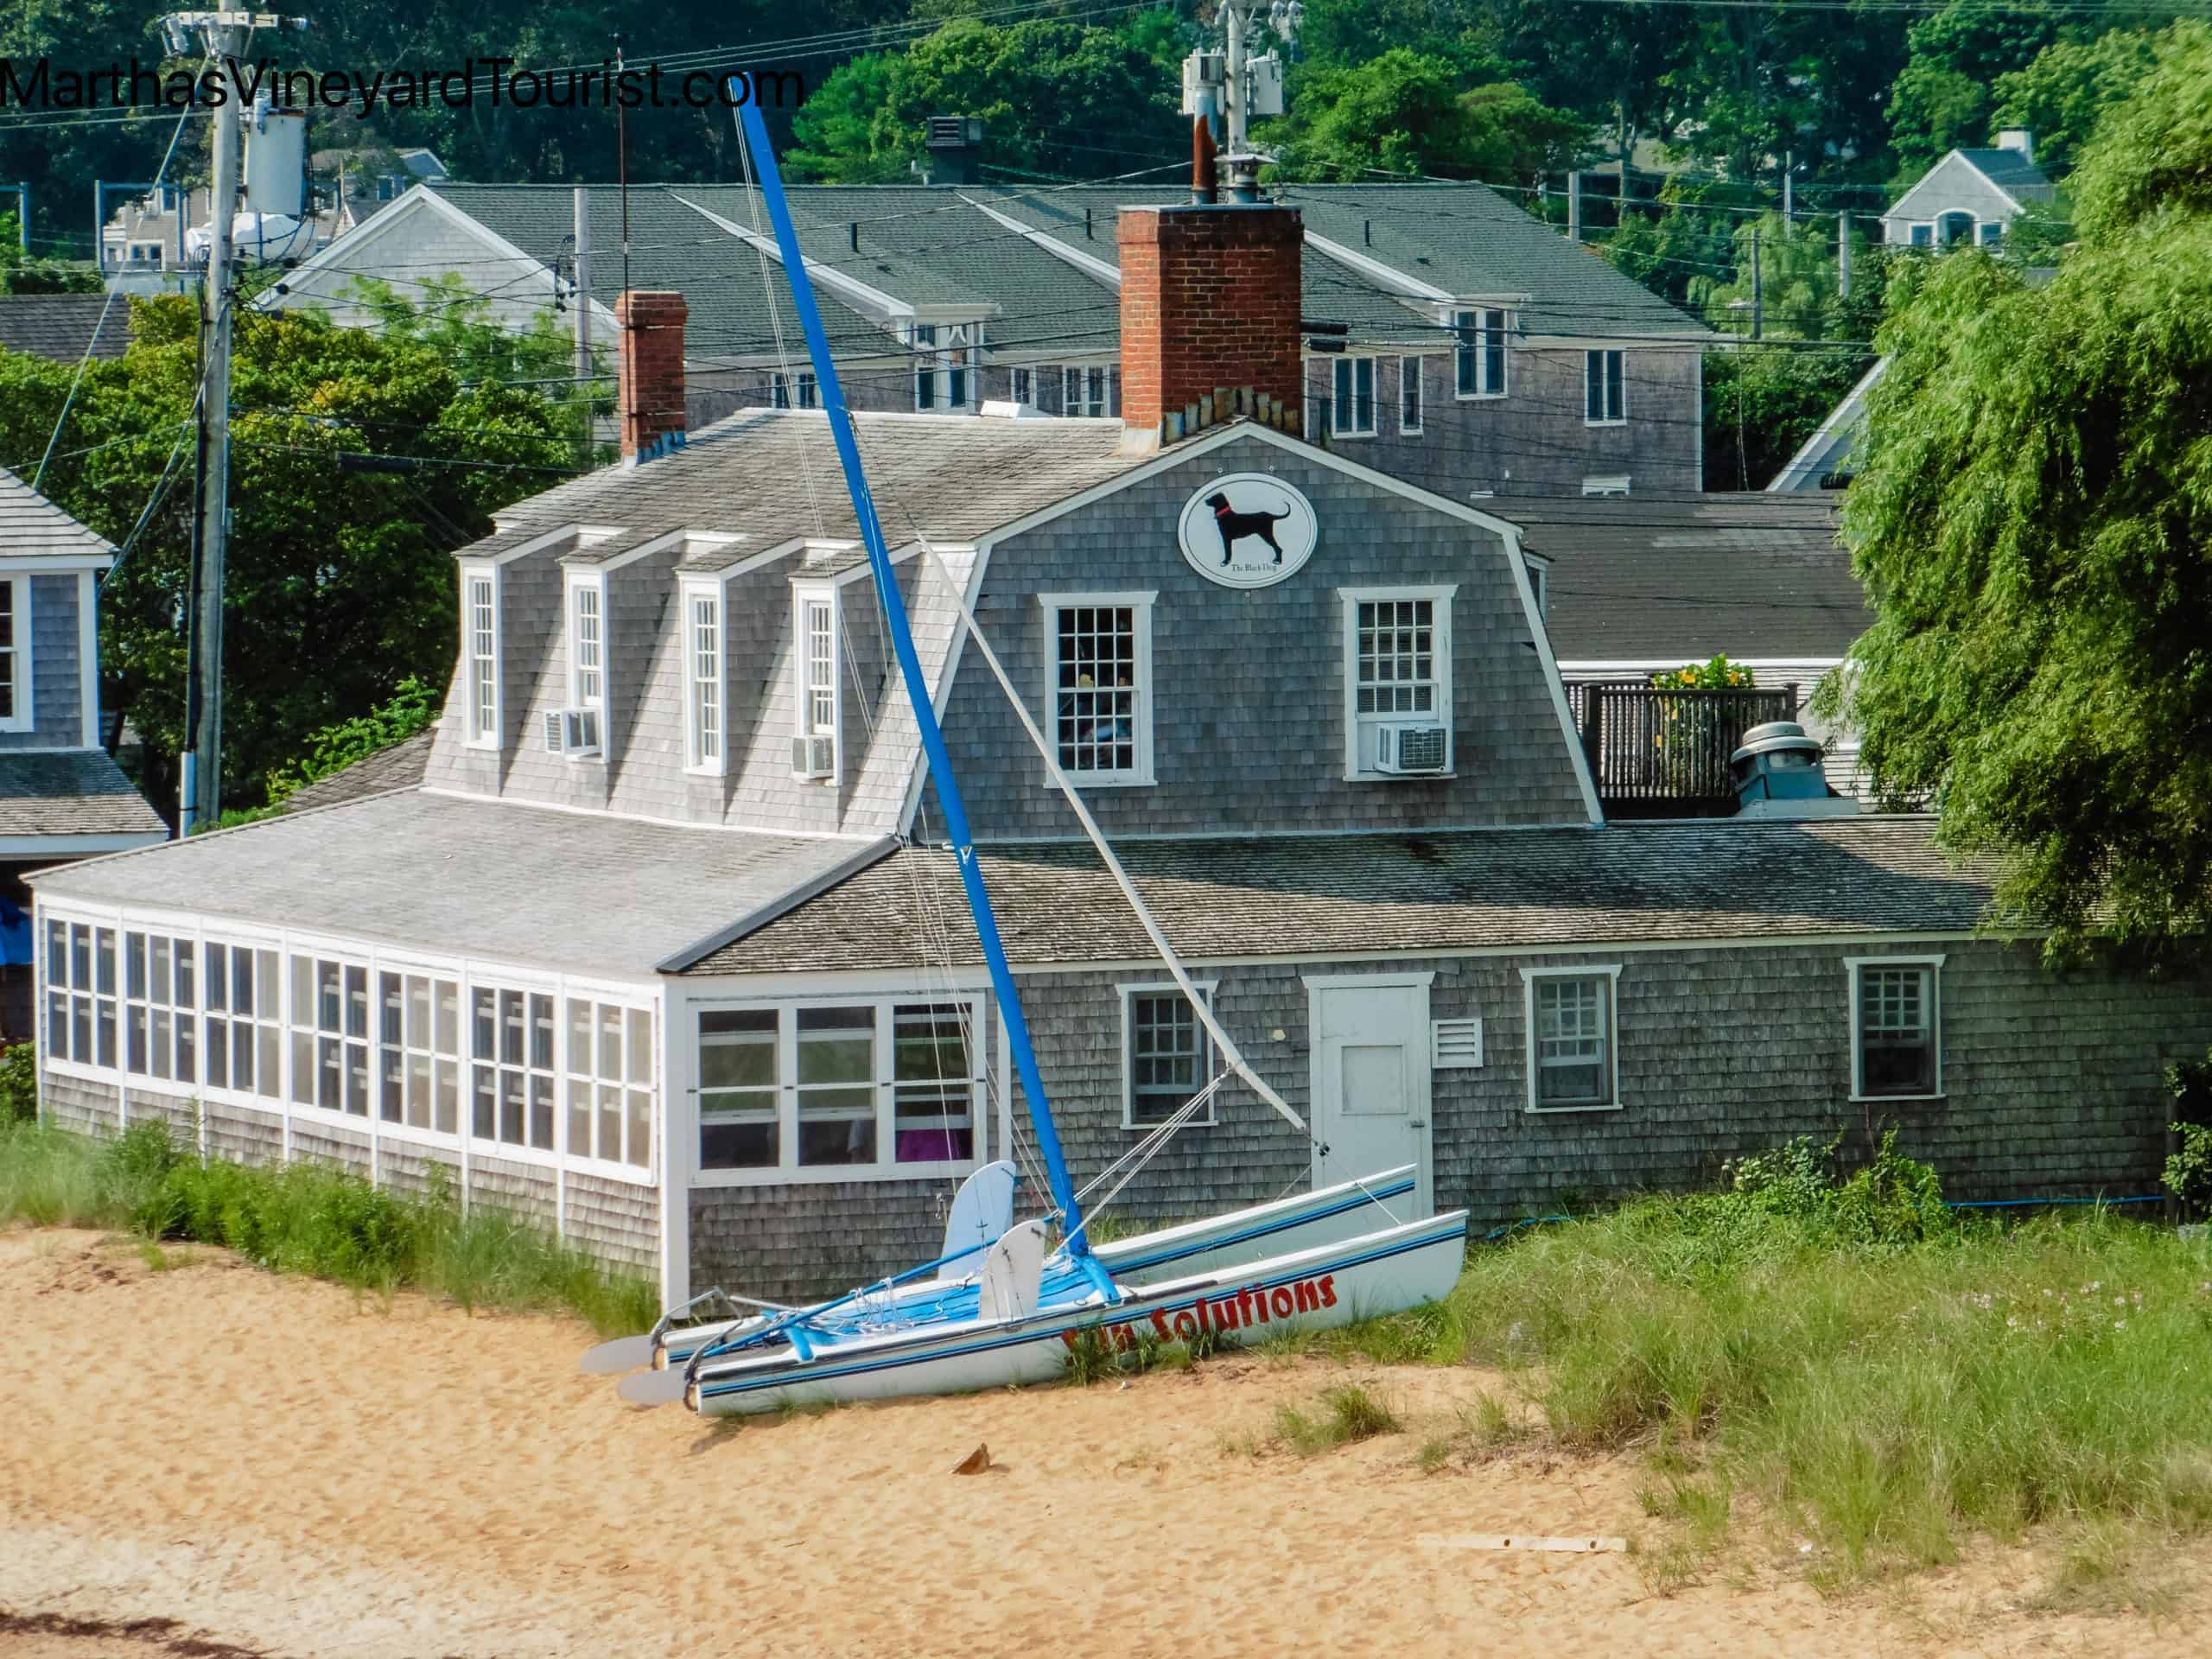 The Black Dog Store in Vineyard Haven